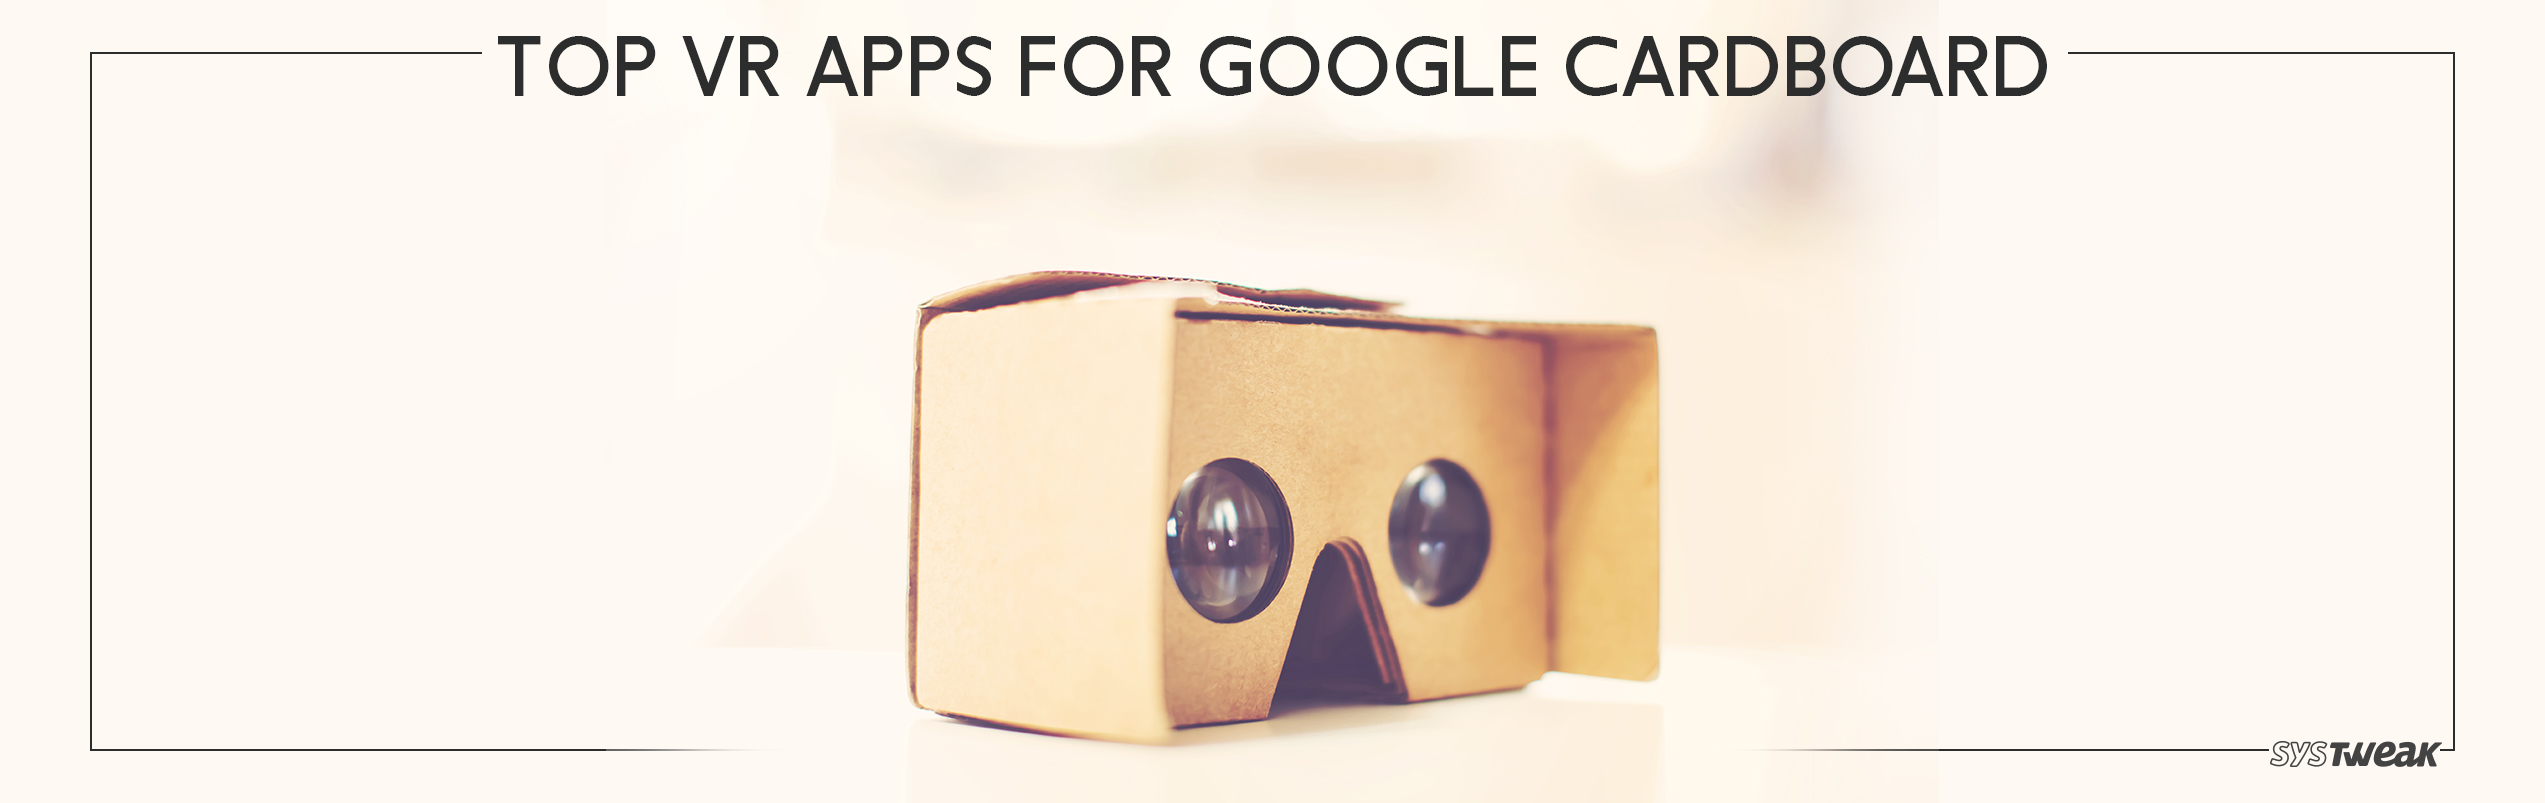 6 Best VR Apps For Google Cardboard